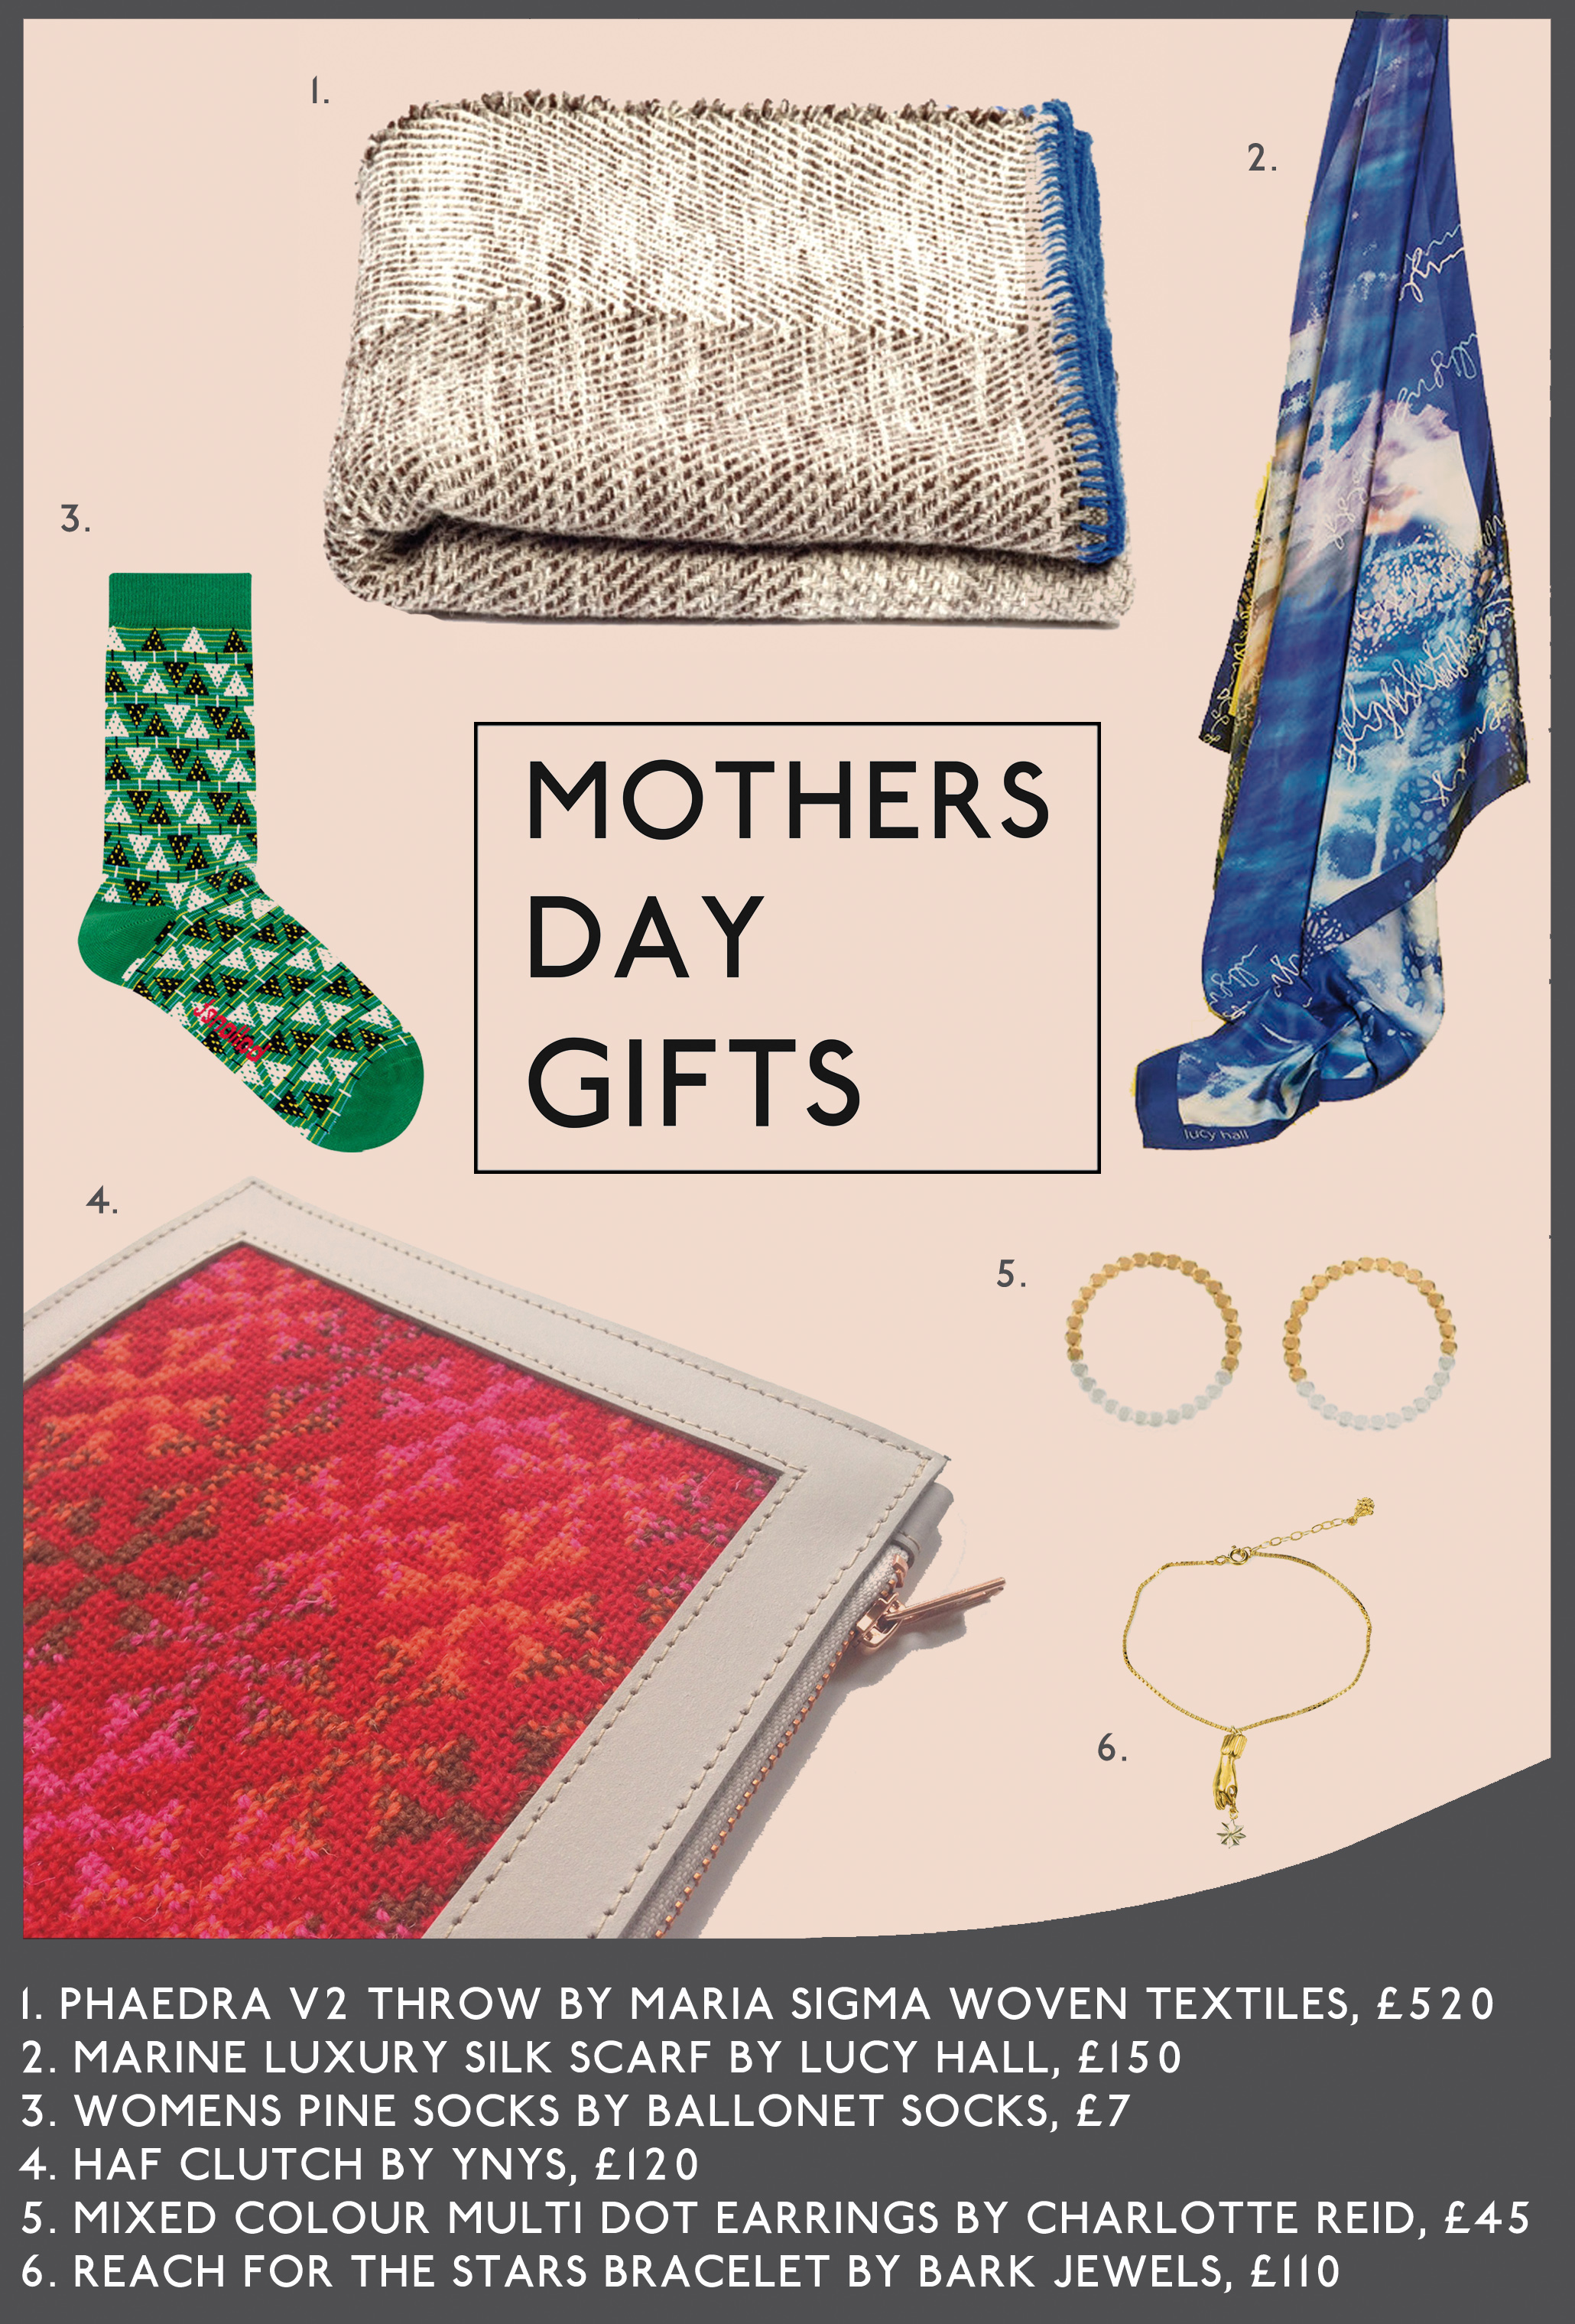 MOTHERS DAY POSTER.jpg